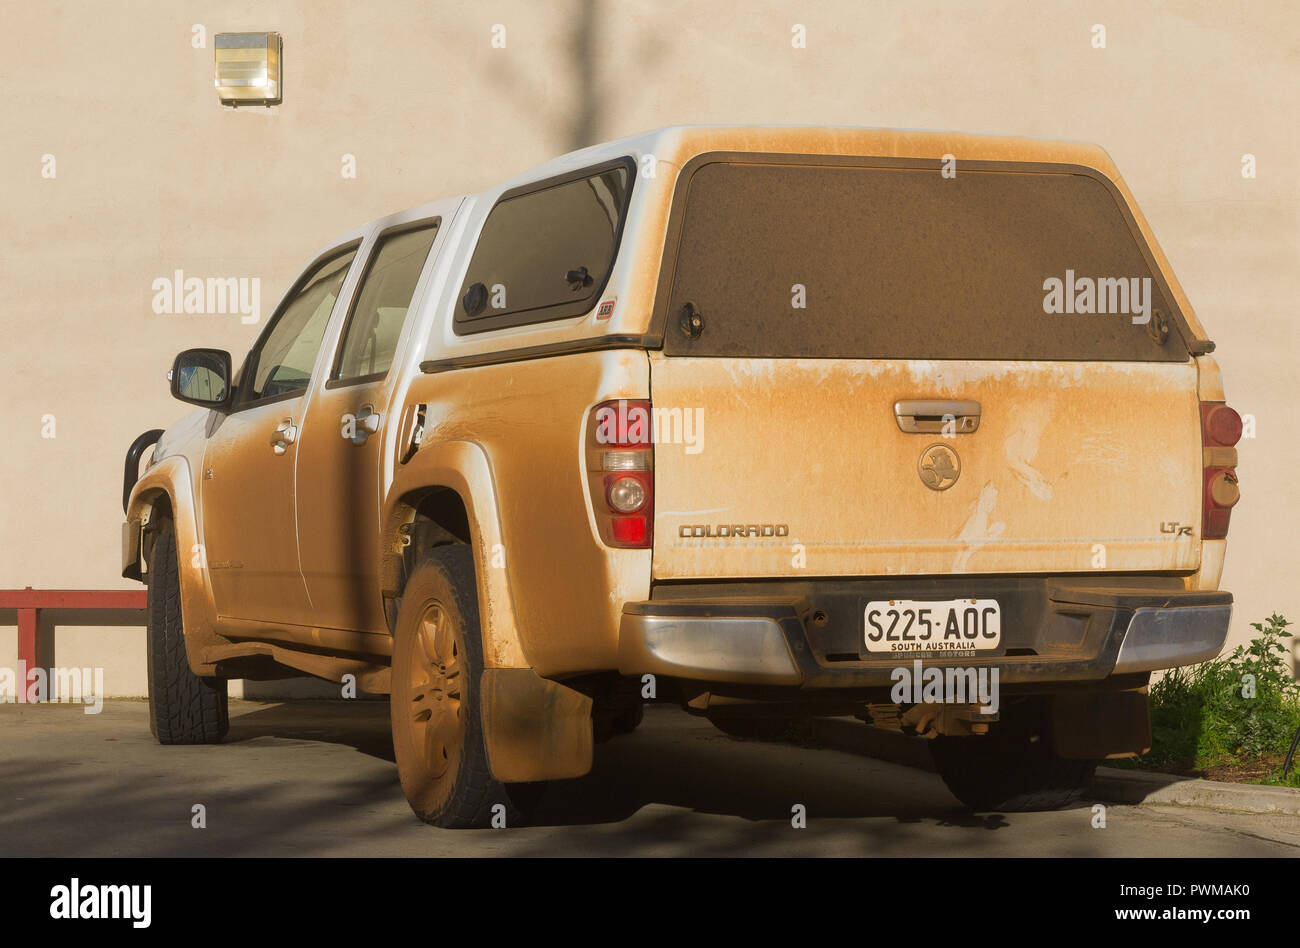 White Holden Colorado car covered in a thick layer of dust on Kangaroo Island in South Australia, Australia. - Stock Image